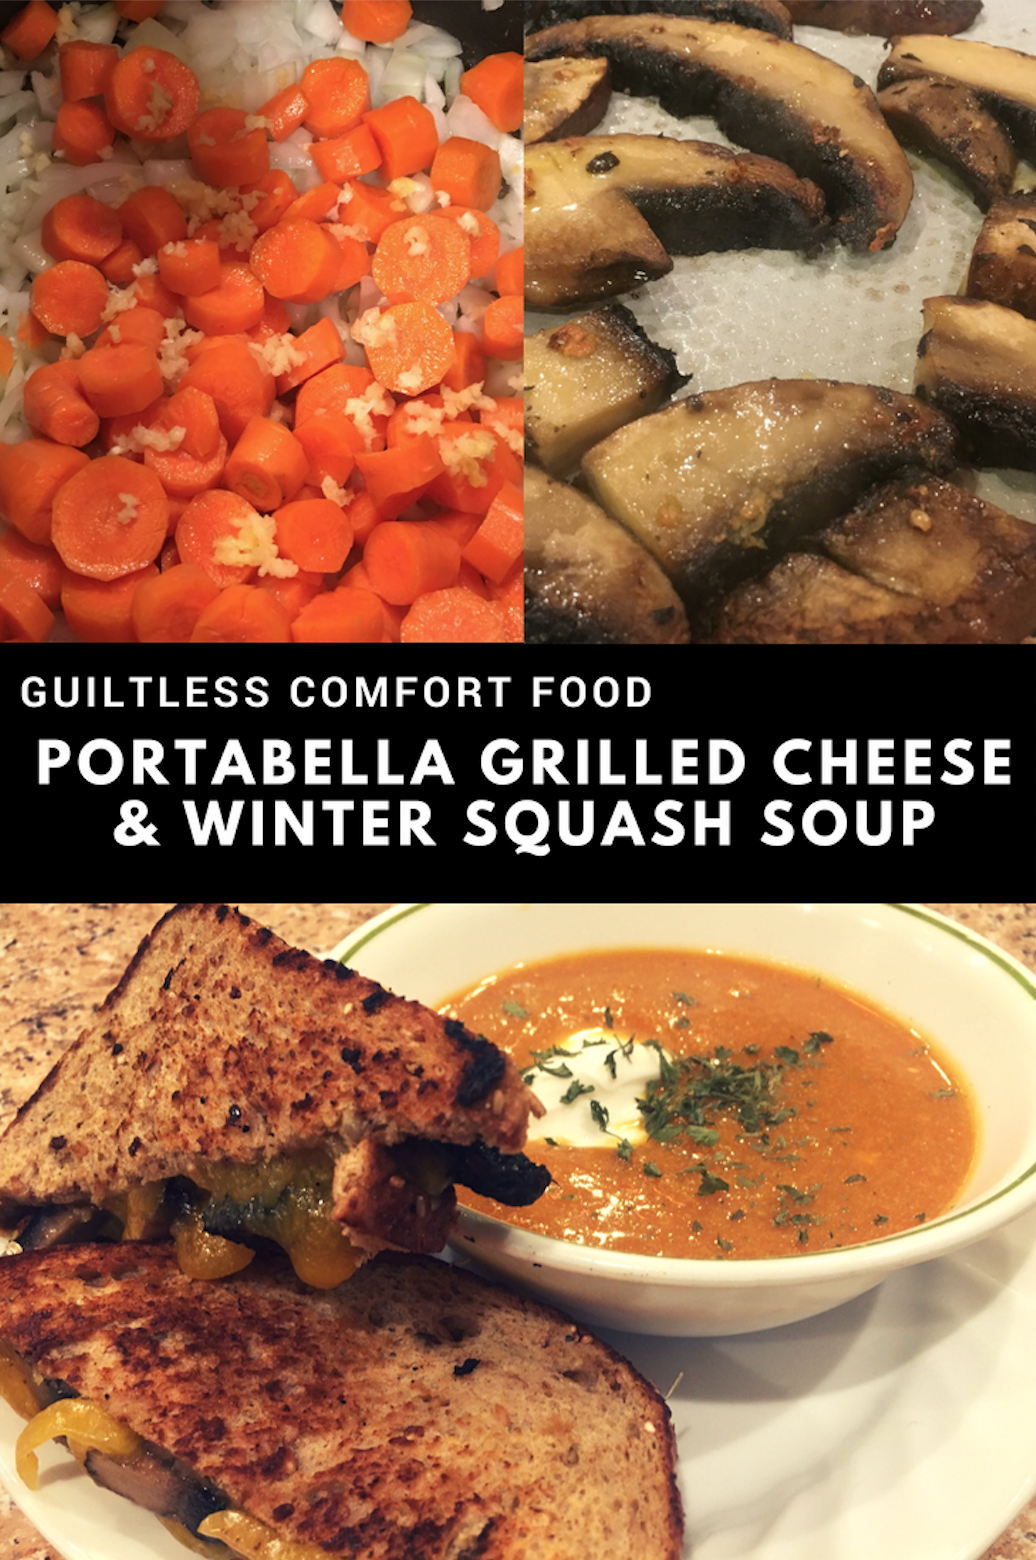 Guiltless Comfort Food: Portabella Grilled Cheese & Winter Squash Soup